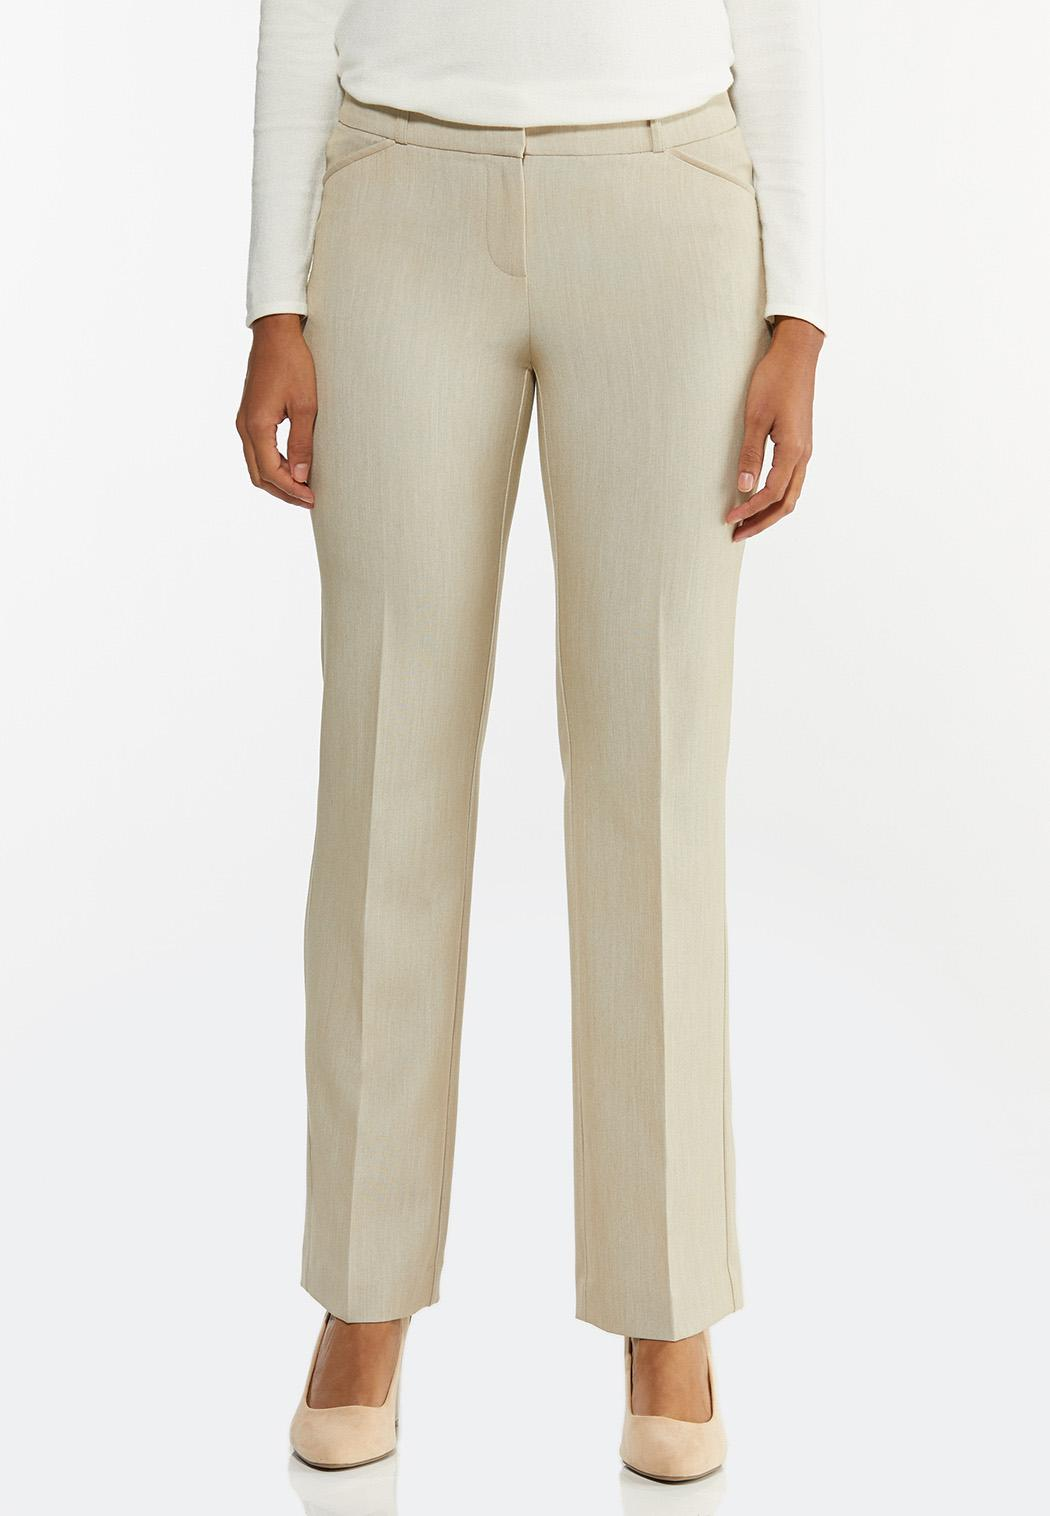 Tan Trouser Pants